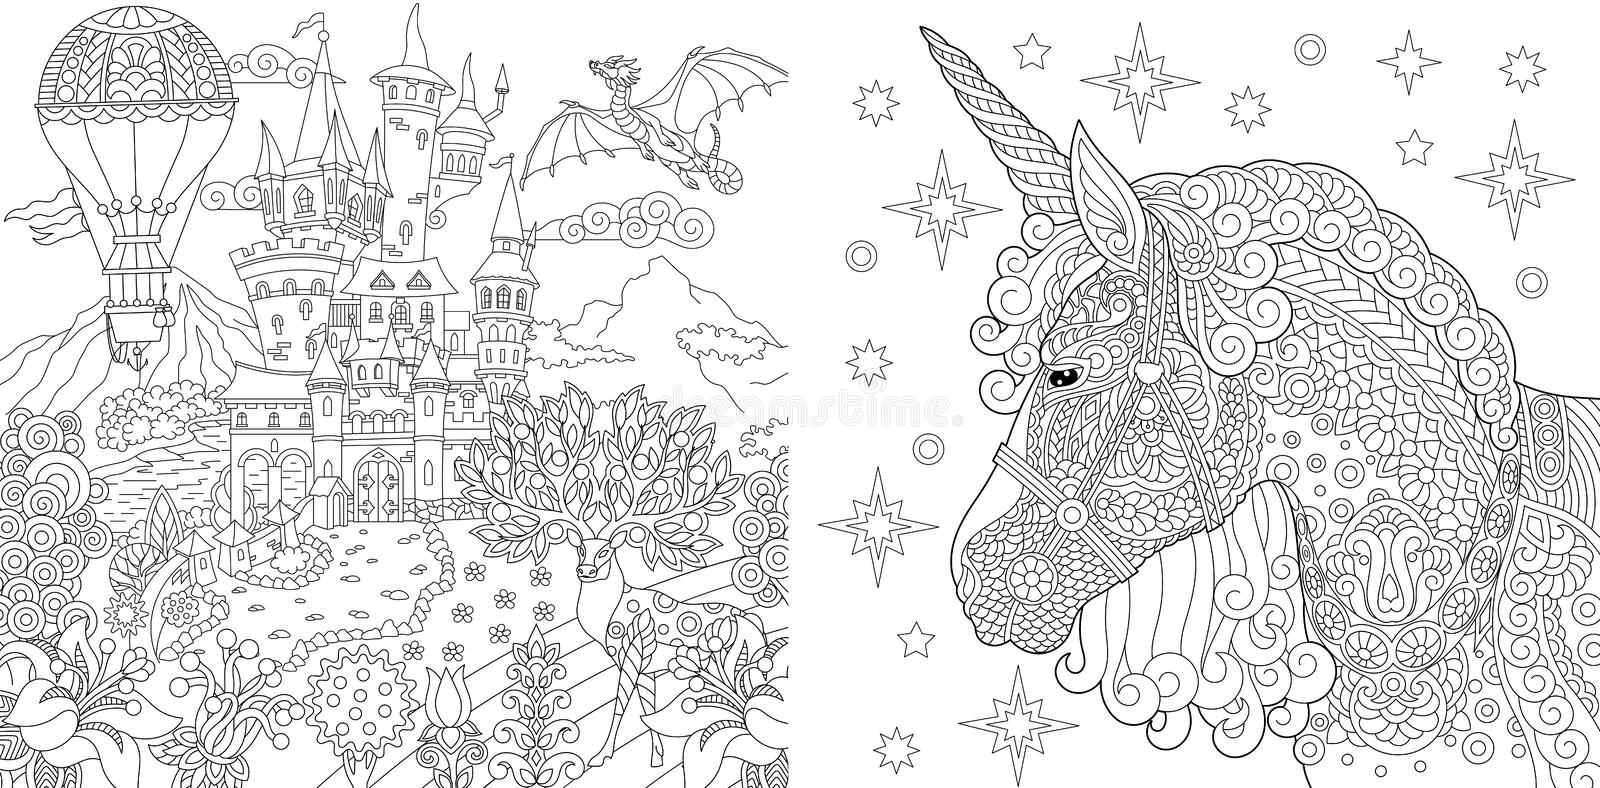 - Coloring Pages. Coloring Book For Adults. Colouring Pictures With Fairytale  Castle And Magic Unicorn. Antistress Freehand Sketch Stock Vector -  Illustration Of Adventure, Aerostat: 131672692